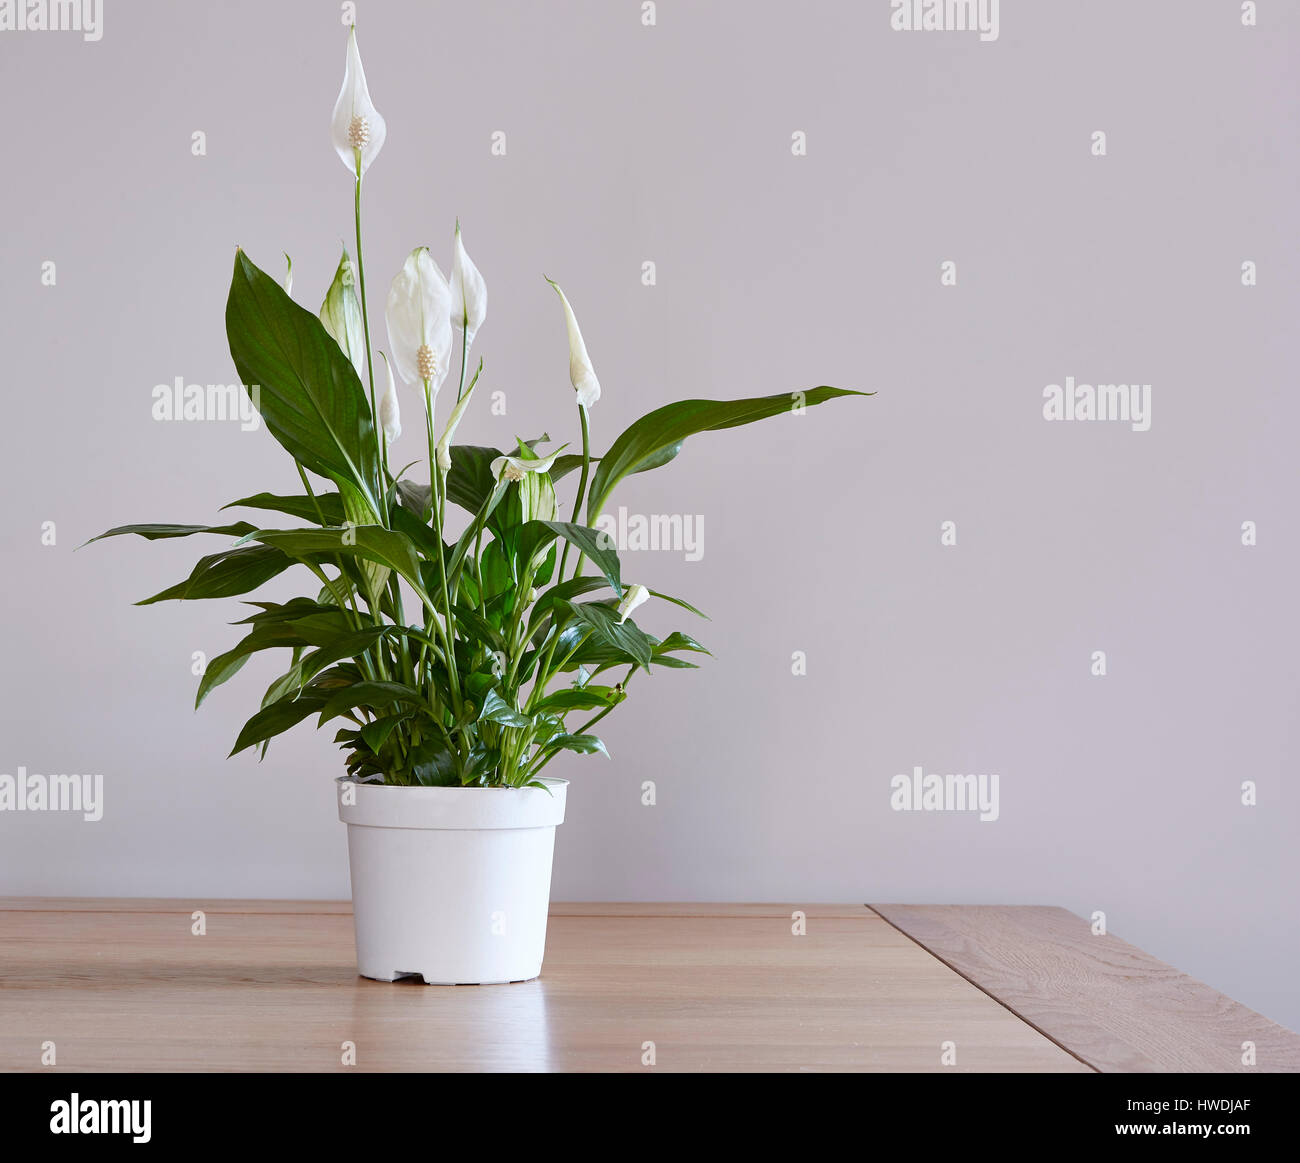 Potted Peace Lily Plant Stock Photos & Potted Peace Lily Plant Stock on corn plant houseplant, bamboo palm houseplant, dragon tree houseplant, kentia palm houseplant, snake plant houseplant, kalanchoe houseplant, begonia houseplant, nephthytis houseplant, rubber plant houseplant, philodendron houseplant, purple wandering jew houseplant, ivy houseplant, cactus houseplant, rubber tree houseplant, schefflera houseplant, dieffenbachia houseplant, boston fern houseplant, peperomia houseplant, dracaena houseplant,